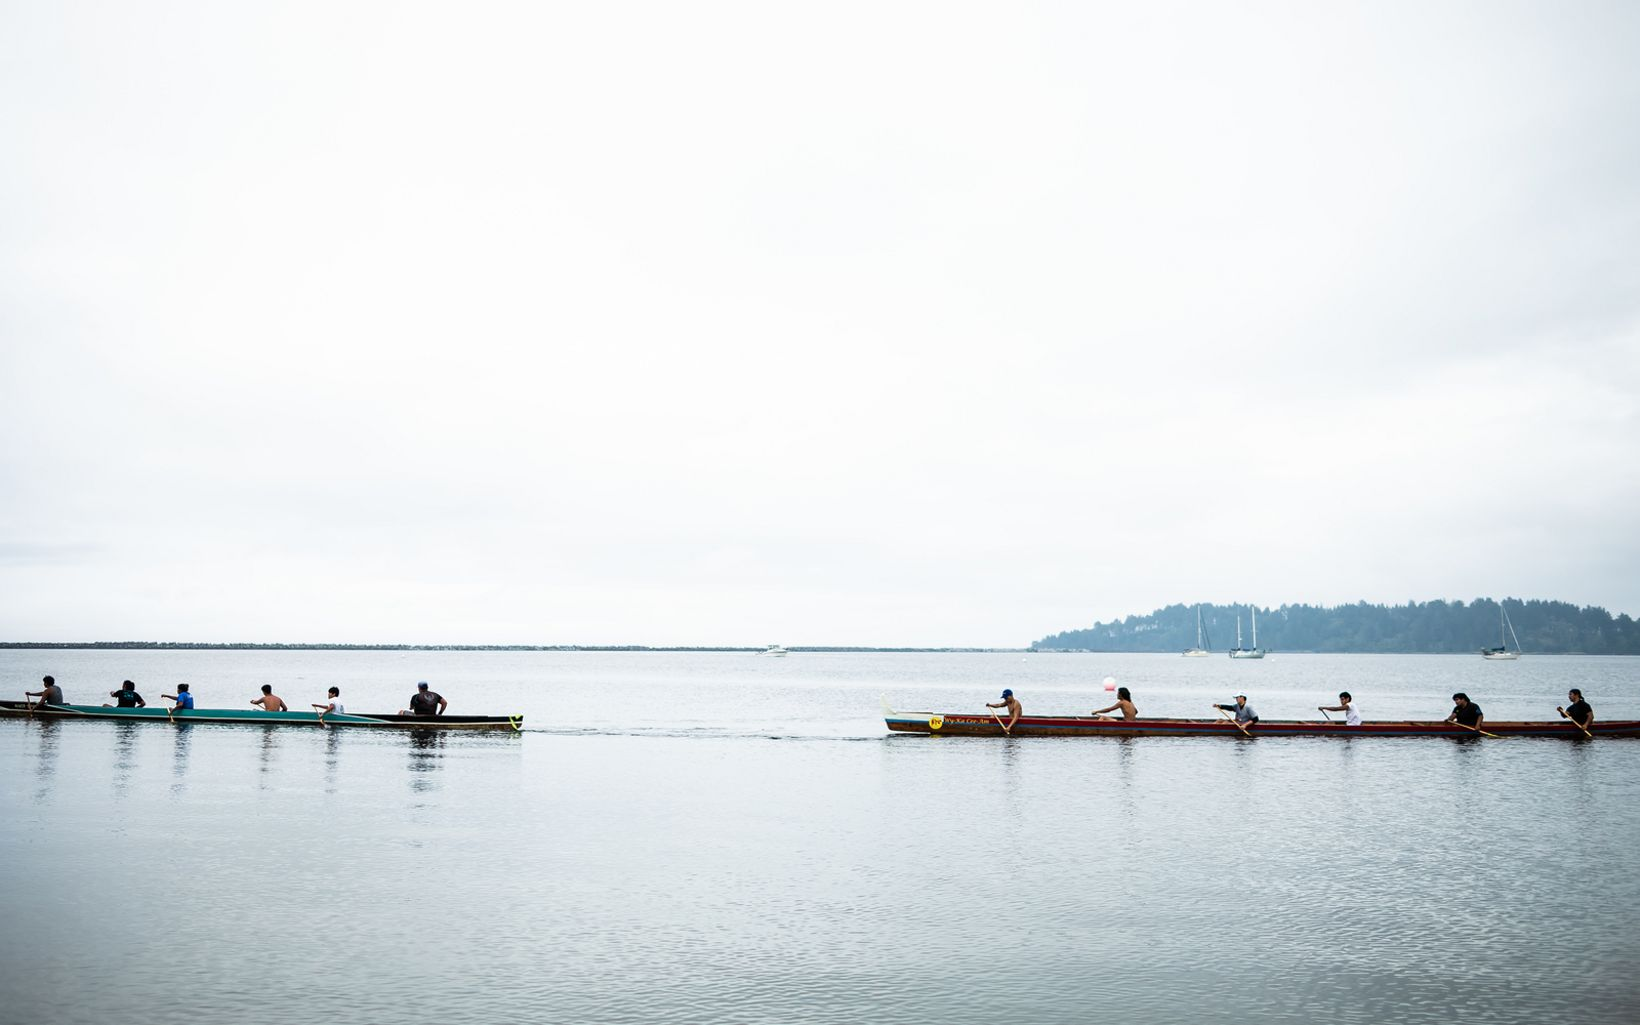 Travel by canoe was and remains a pivotal practice for the tribe, and many tribal members are skilled mariners and navigators.